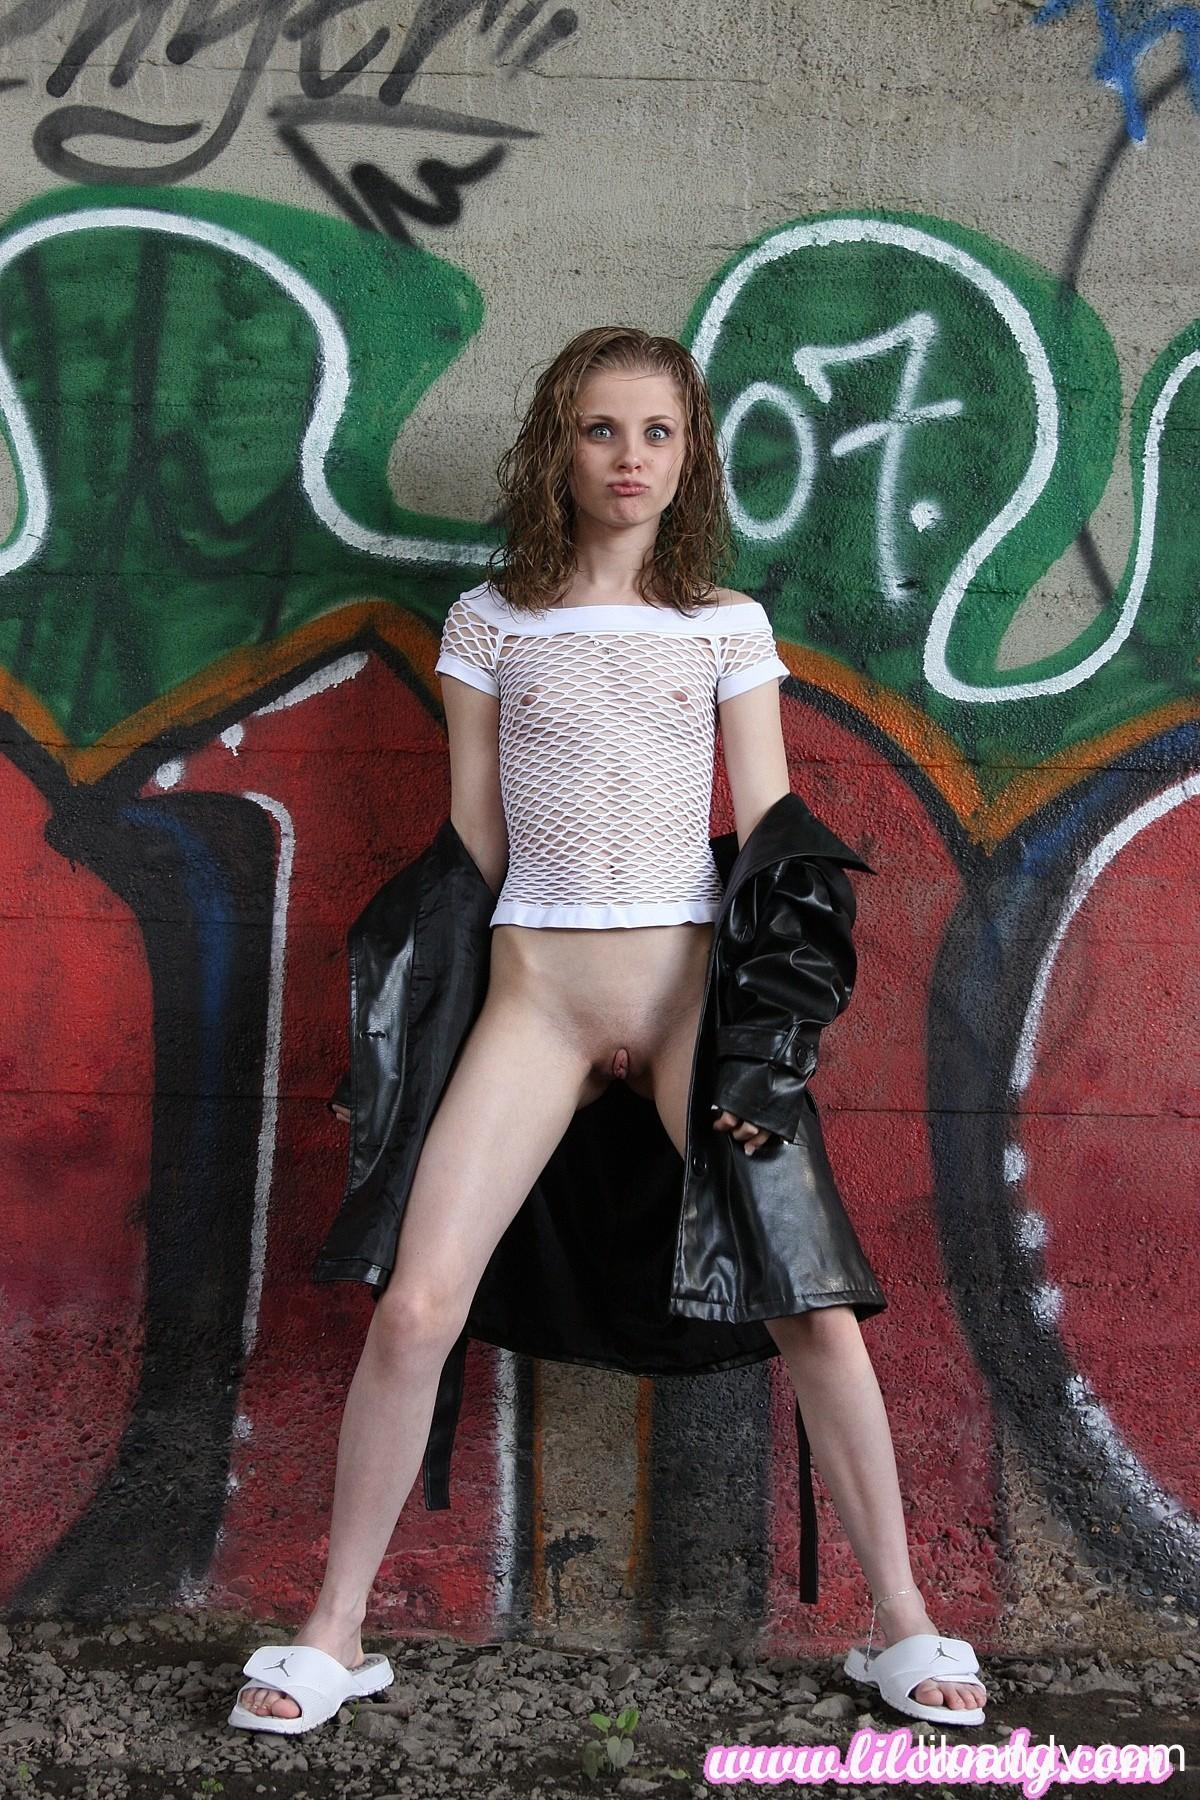 lilcandy is wearing a leather jacket and flashes her pantyless pussy in closeup #3